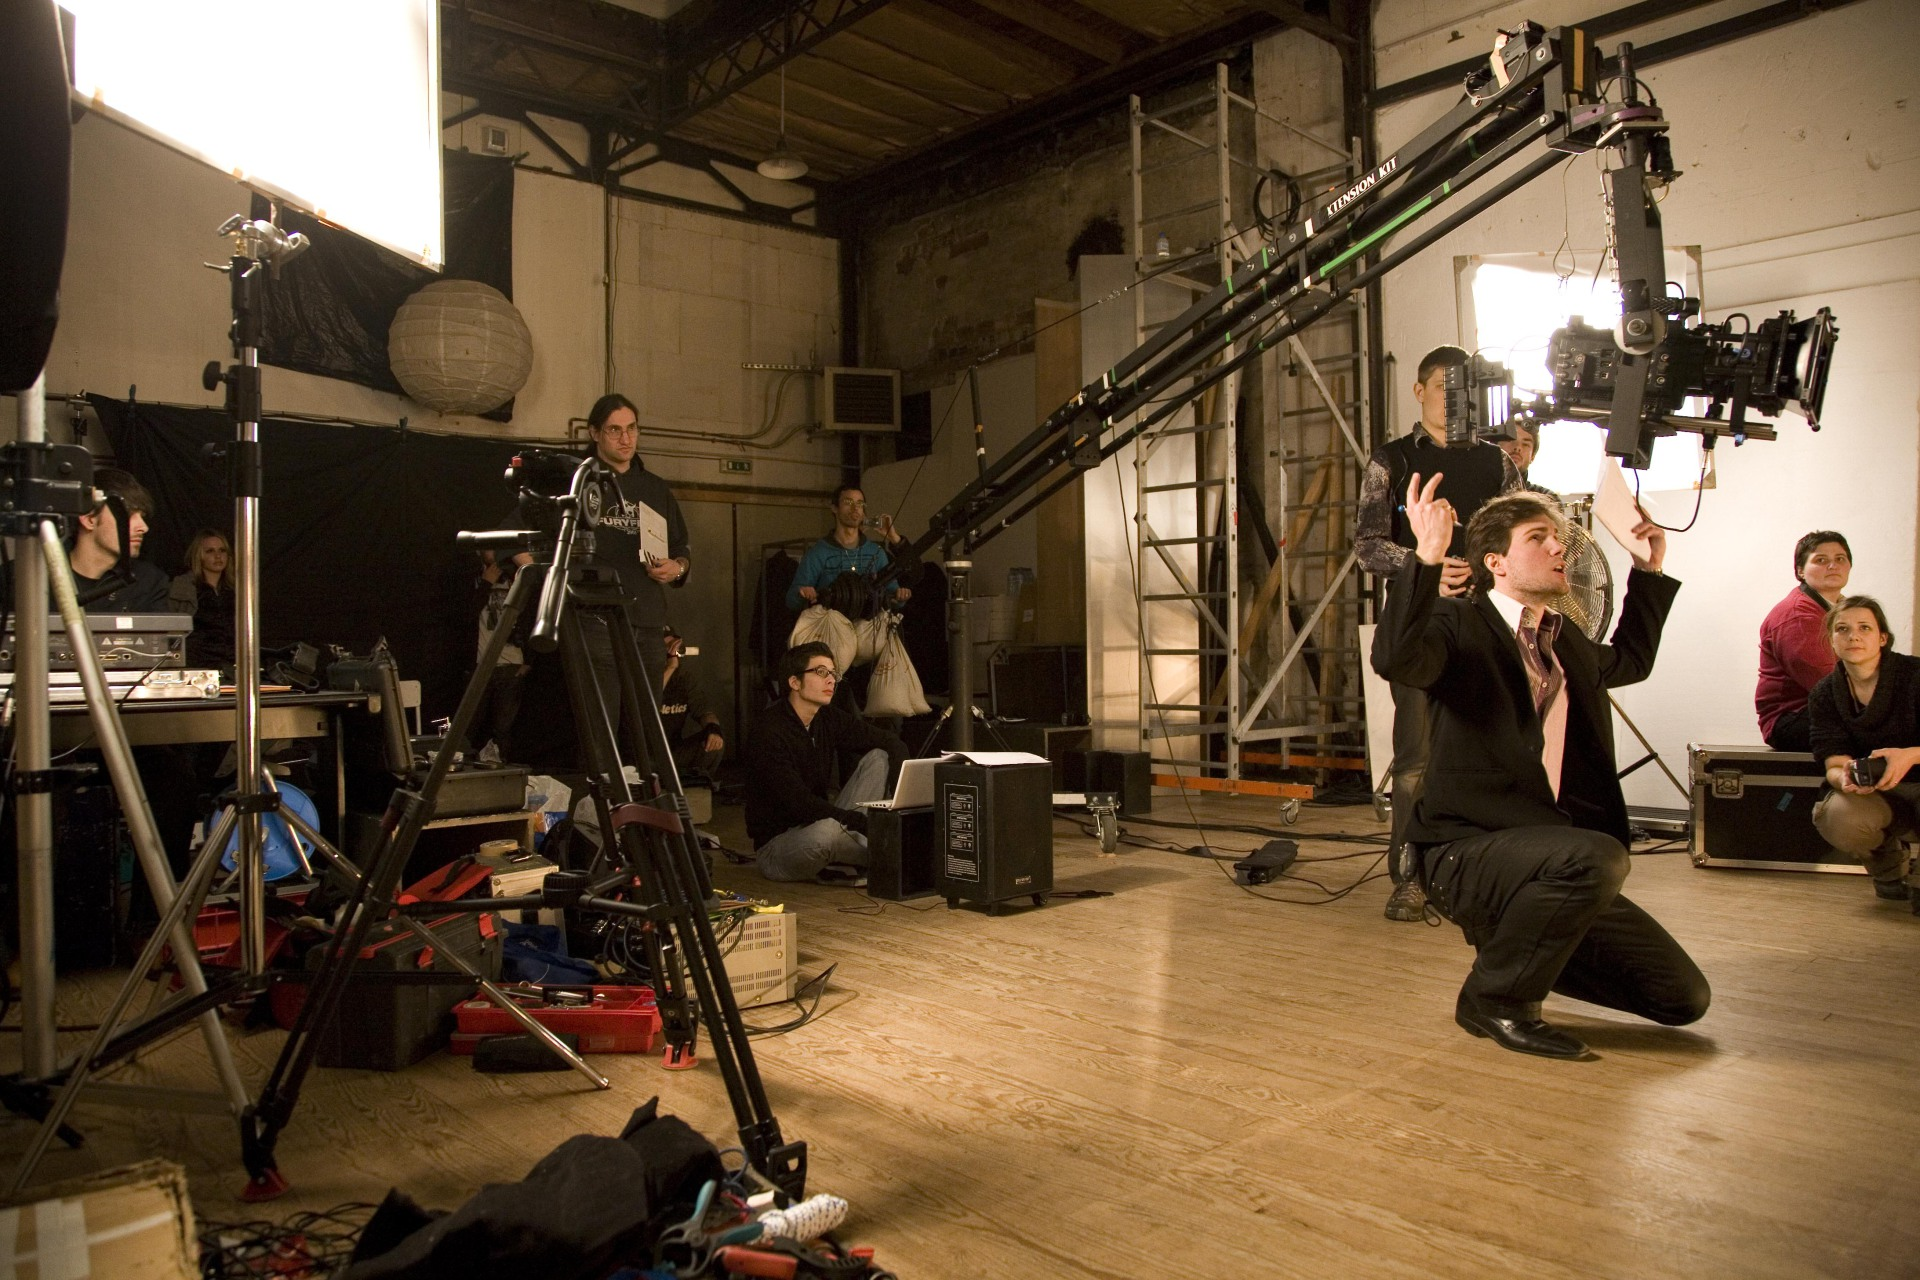 Matt directing during a take